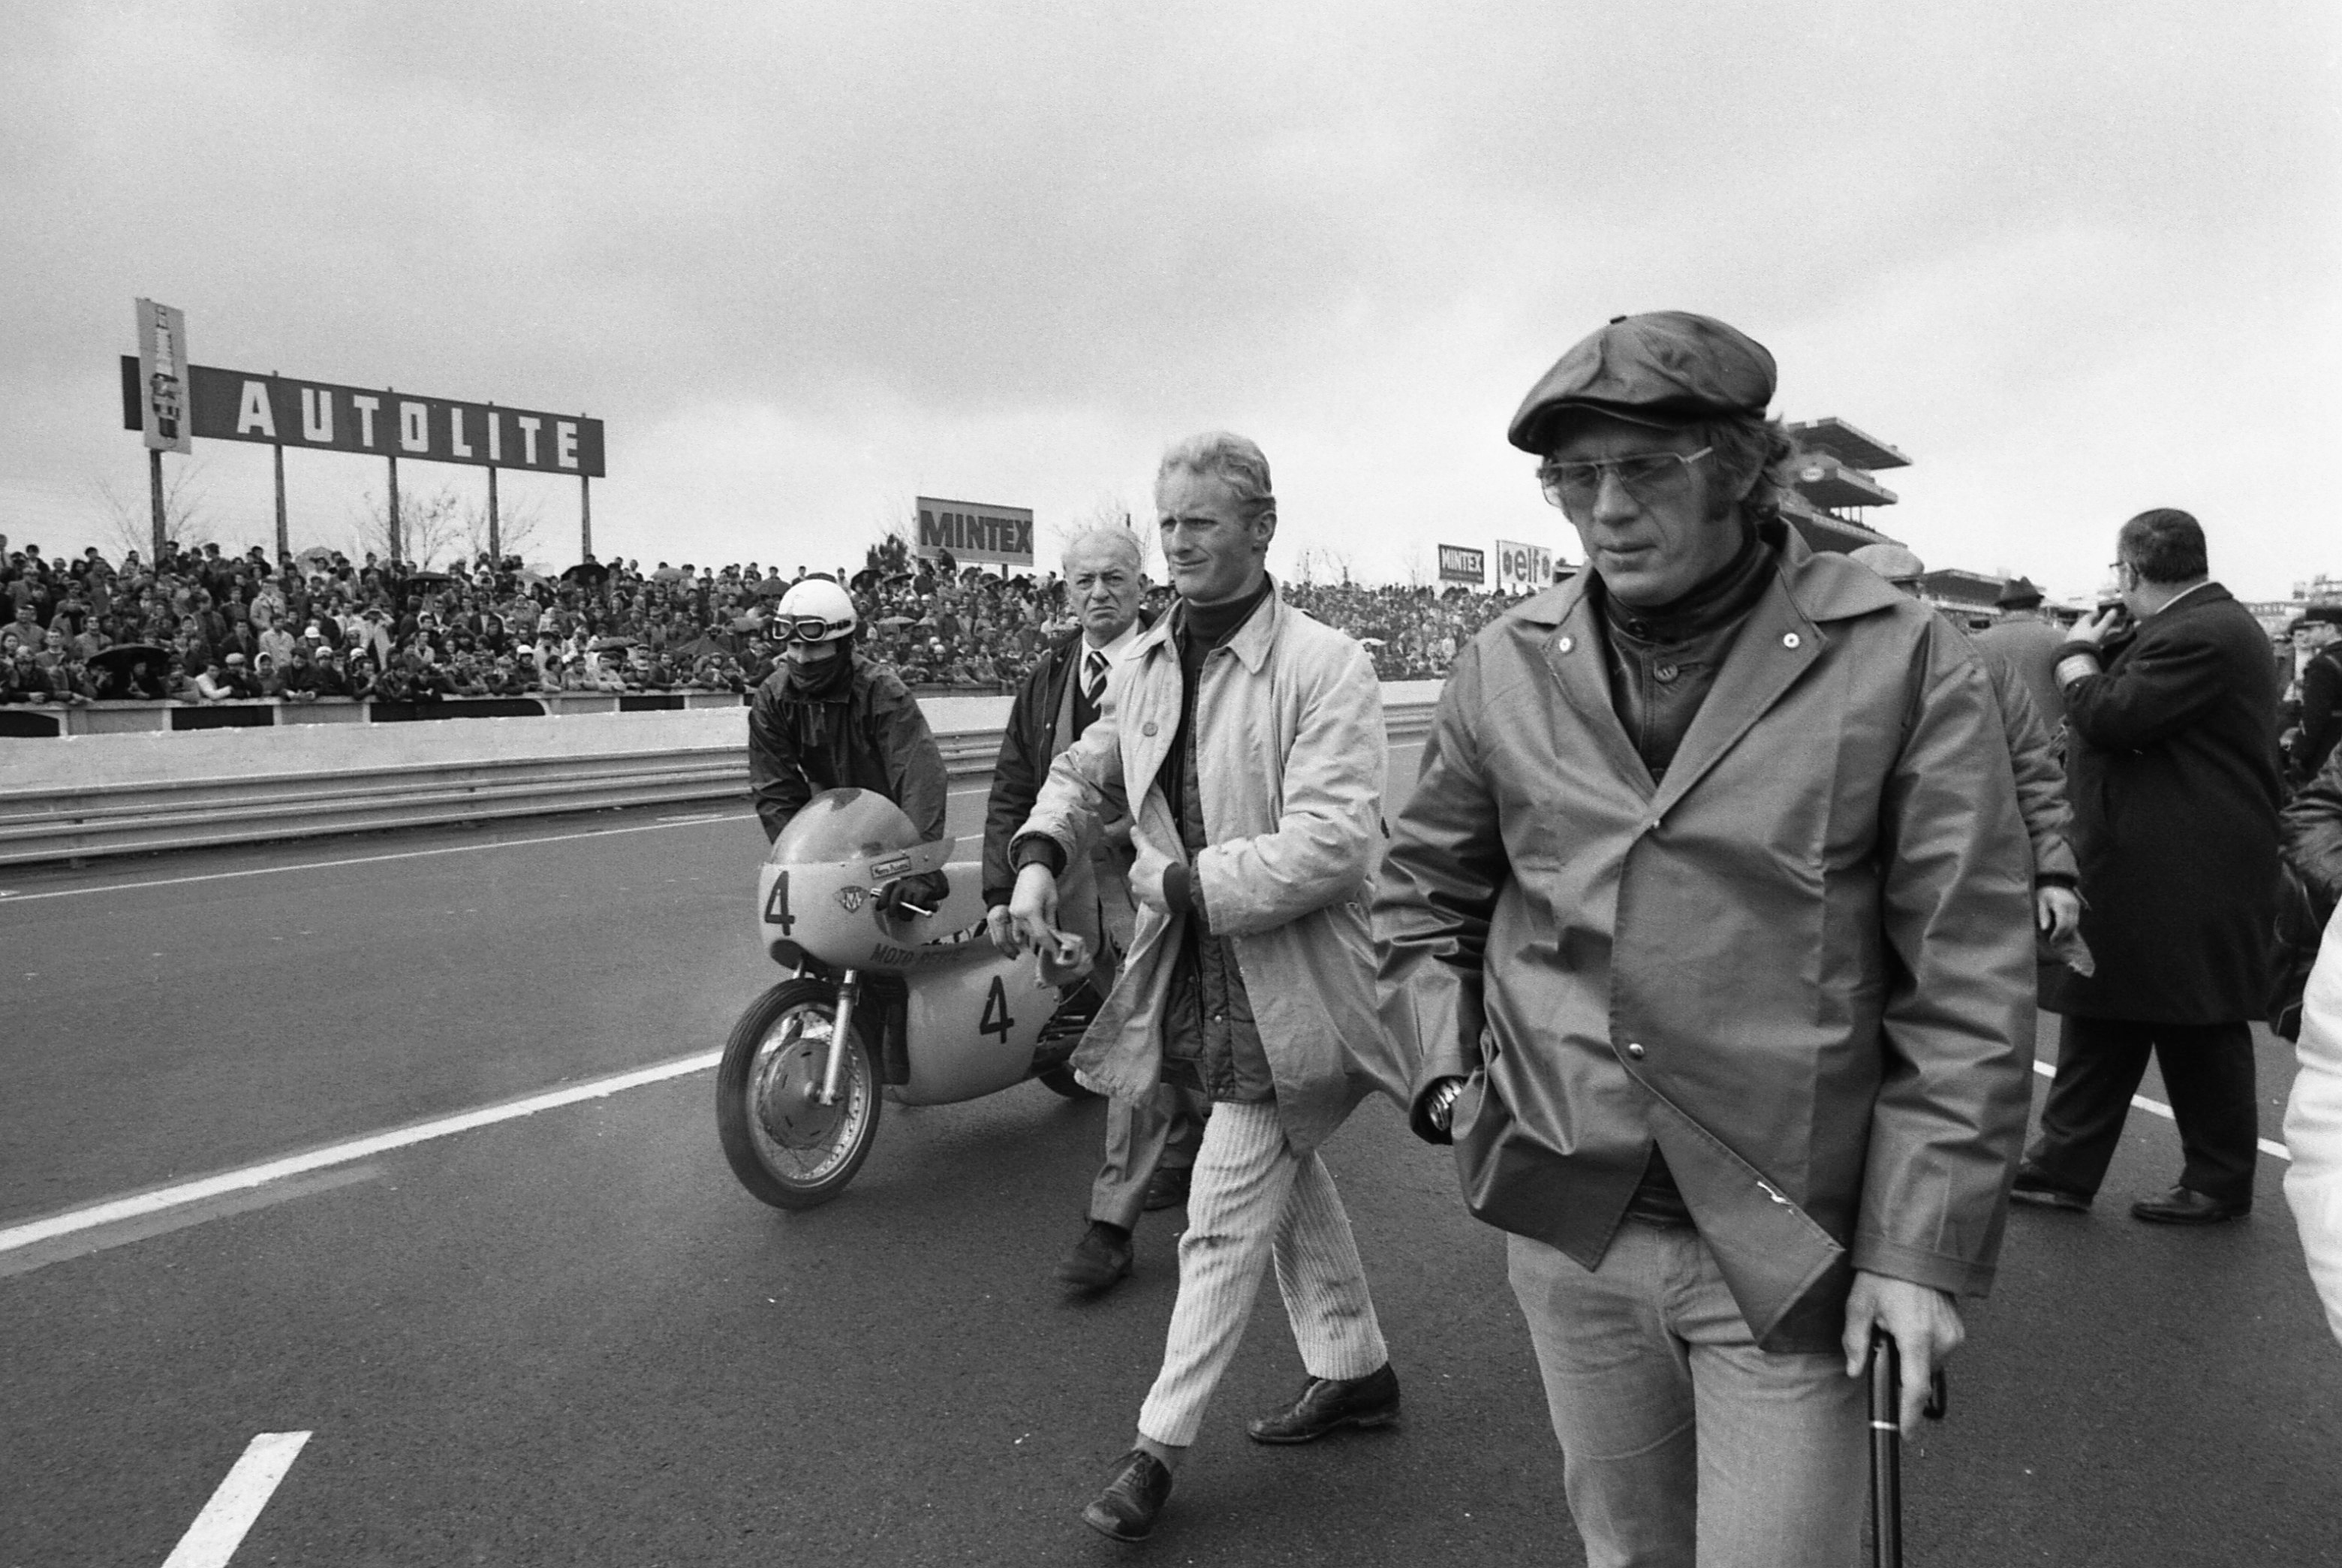 Steve McQueen at Le Mans in 1970 with Porsche 910